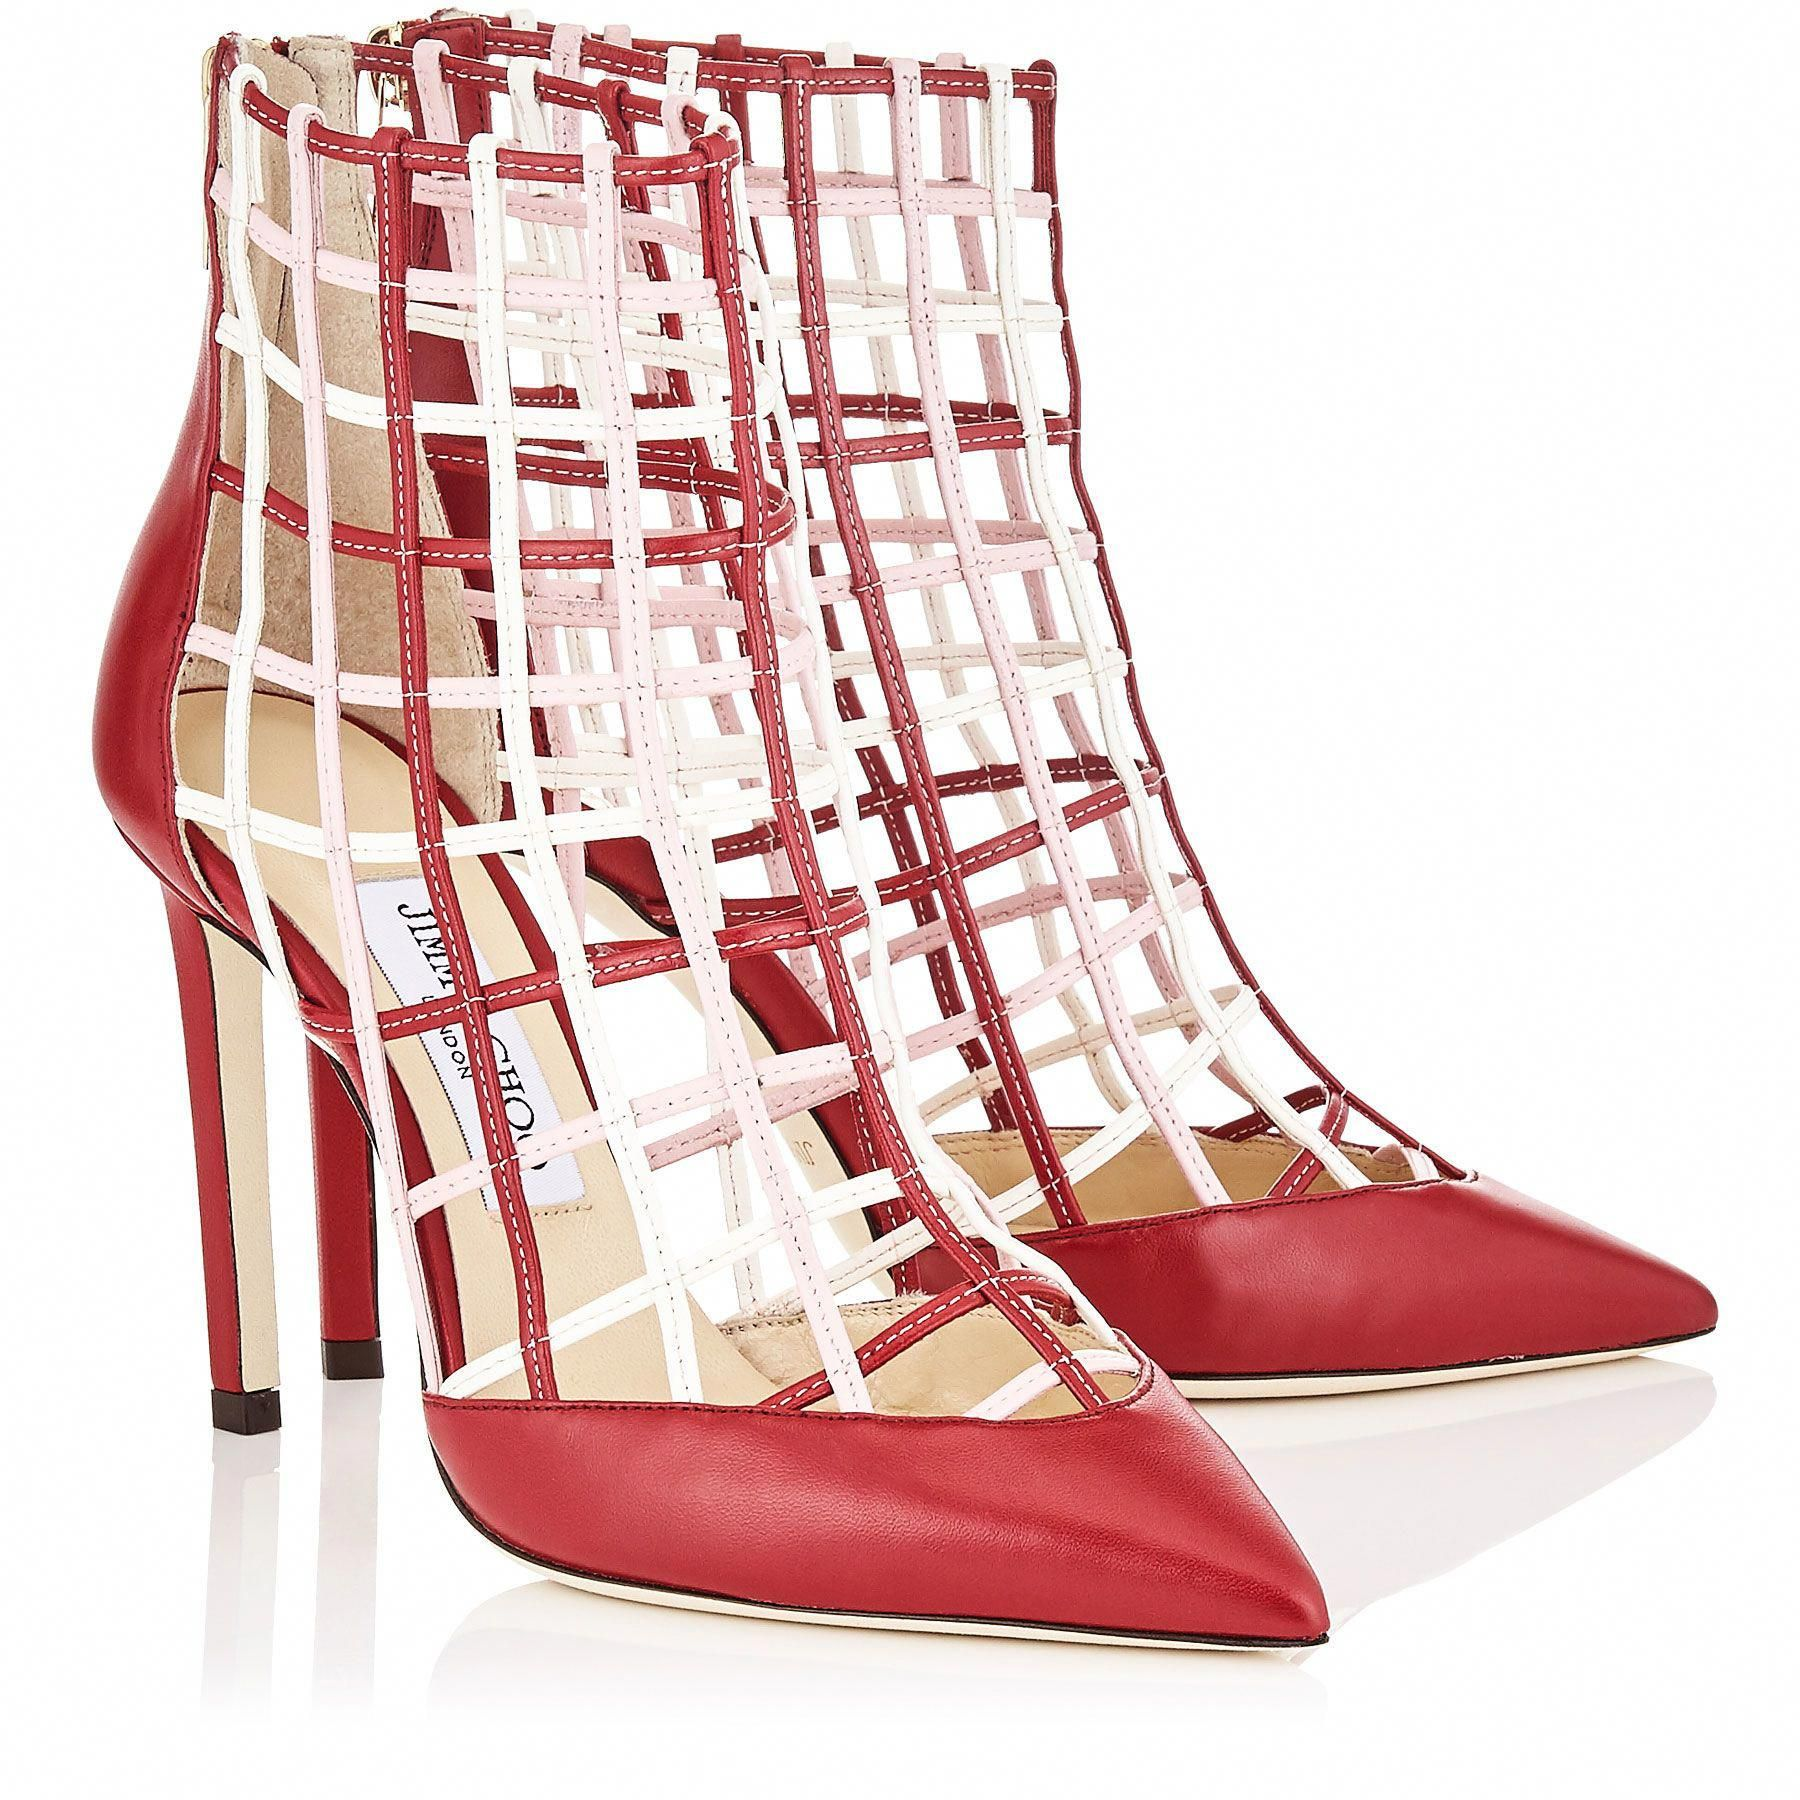 629c91b7765 Red Nappa Leather Booties with Rosewater and Chalk Caged Detailing ...